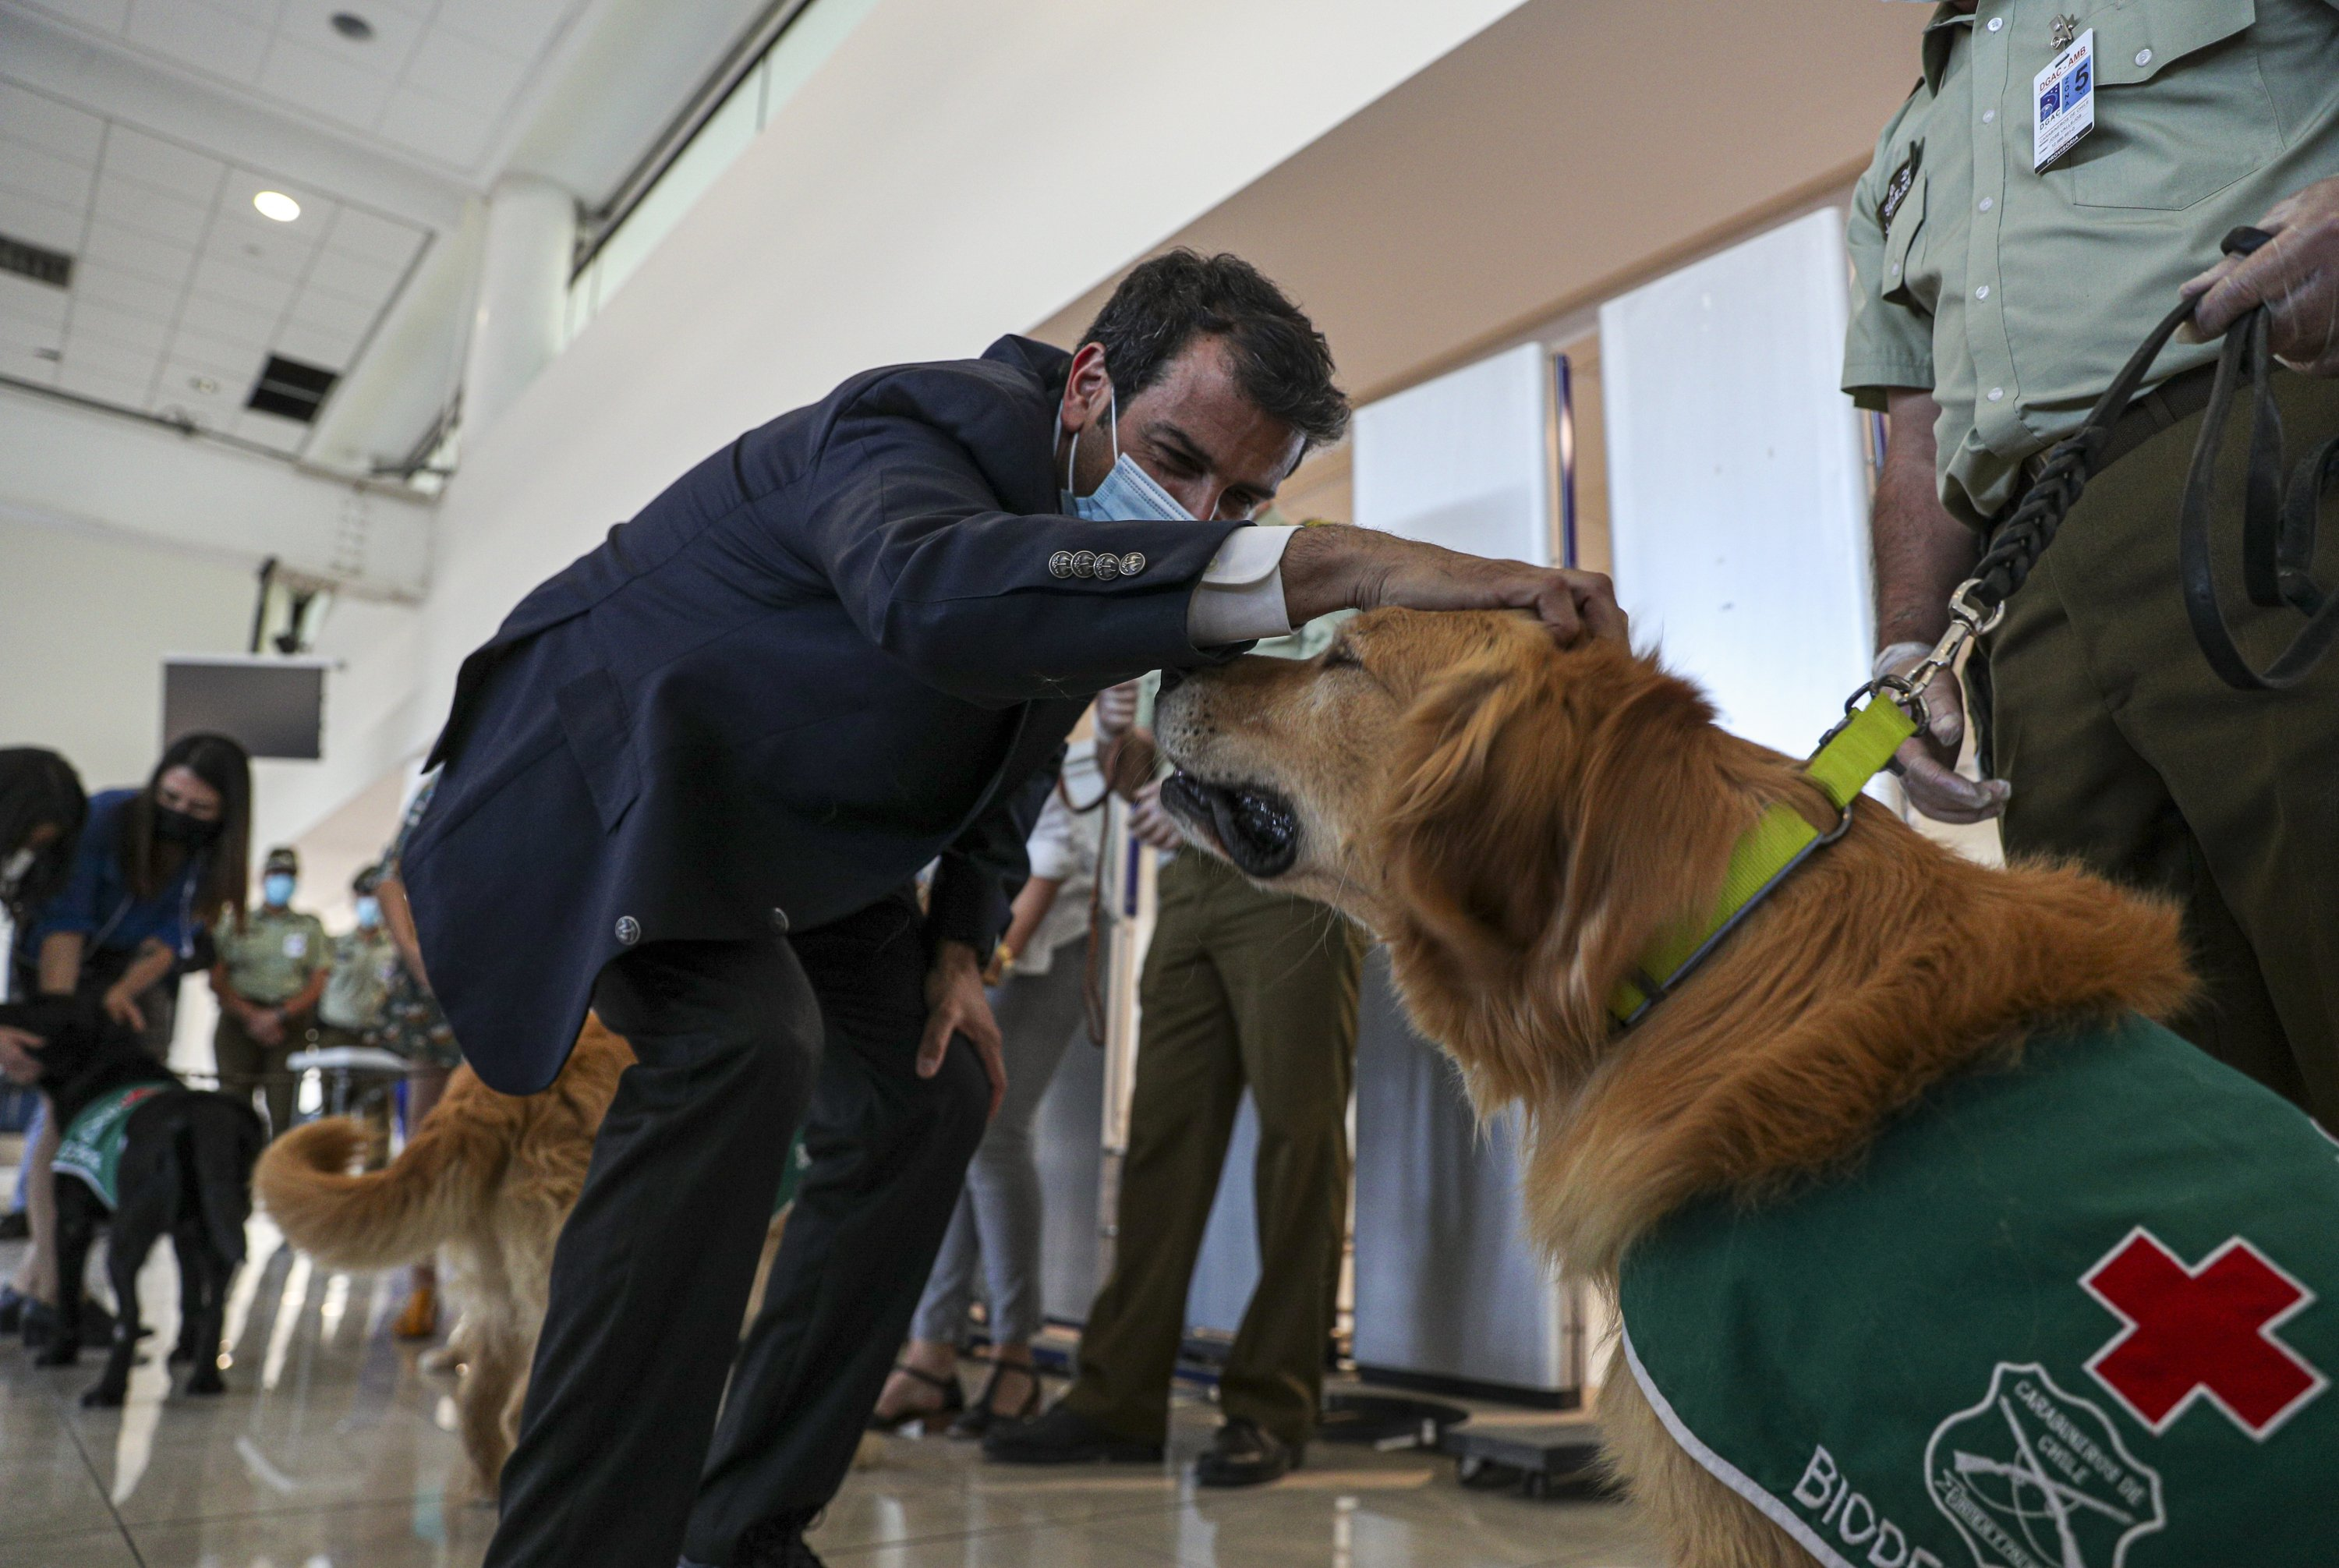 Chilean Interior Minister Rodrigo Delgado, pets a COVID-19 sniffer dog called Clifford after a demonstration to the press at the Arturo Merino Benítez International Airport in Santiago, Chile, Monday, Dec. 21, 2020. Clifford and other coronavirus sniffer dogs will start working Tuesday at the airport. (AP Photo/Esteban Felix)